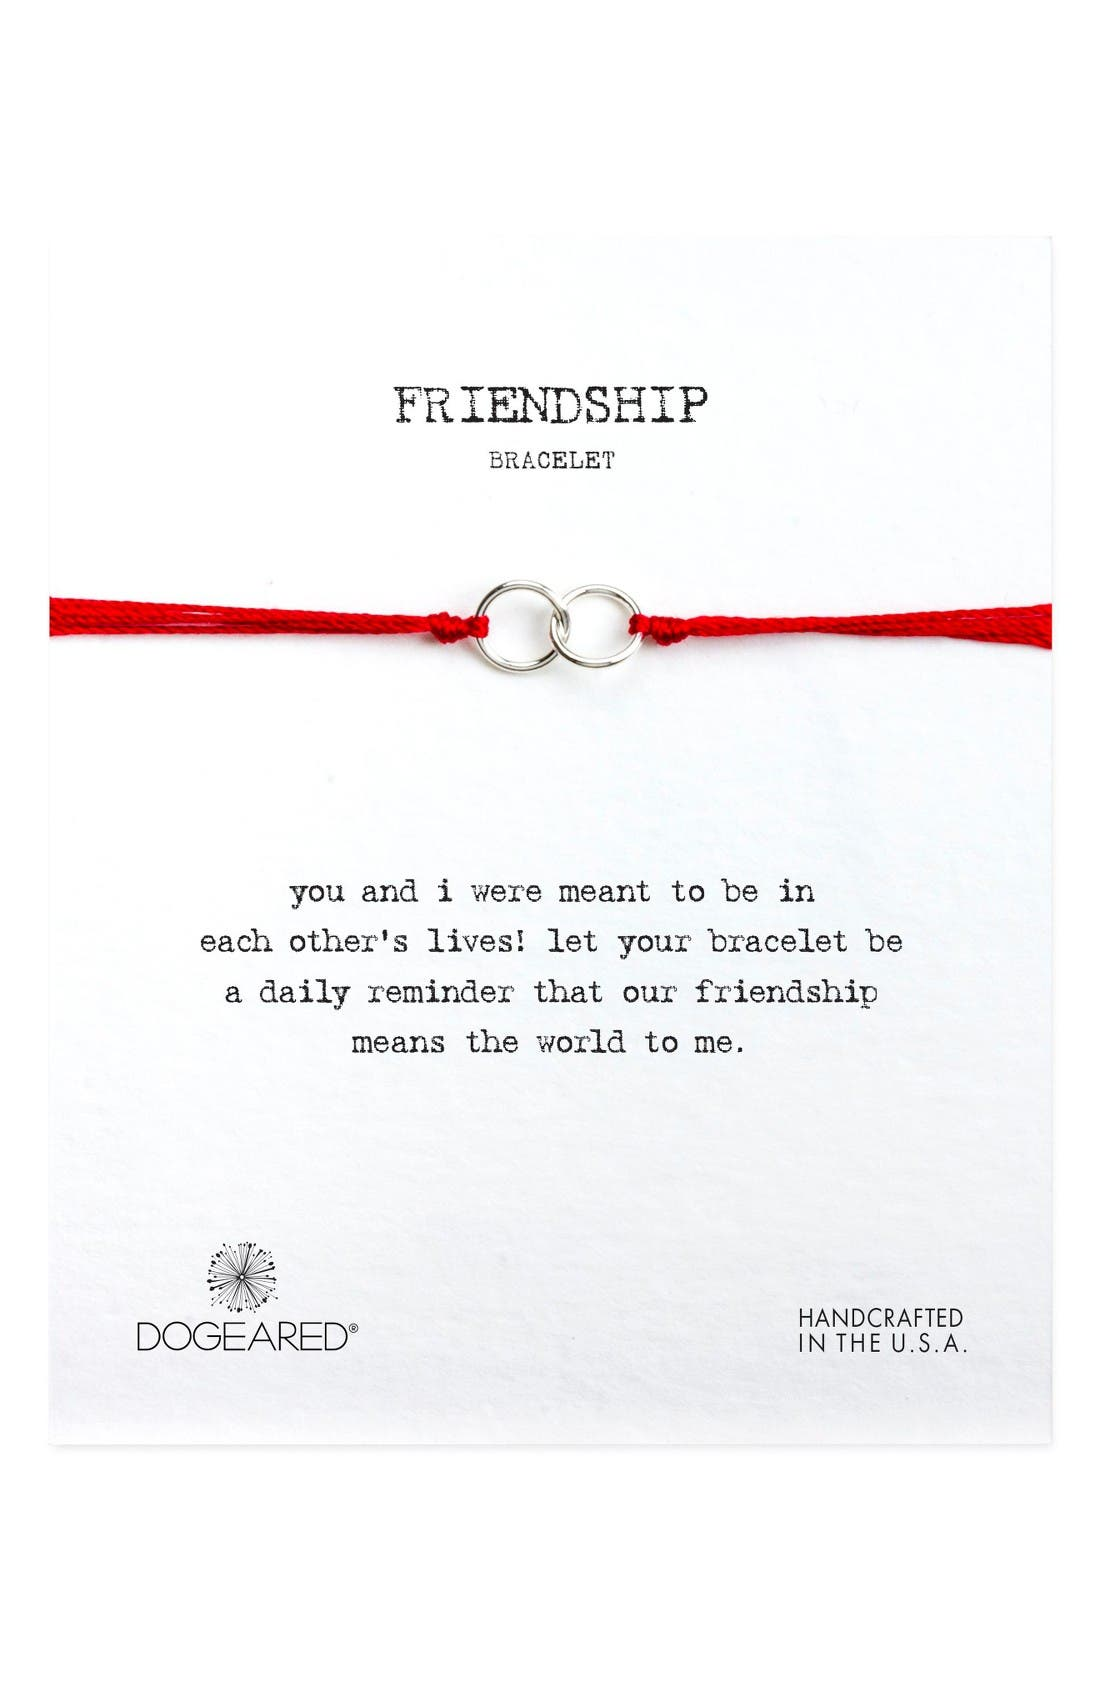 Dogeared Double Linked Friendship Bracelet